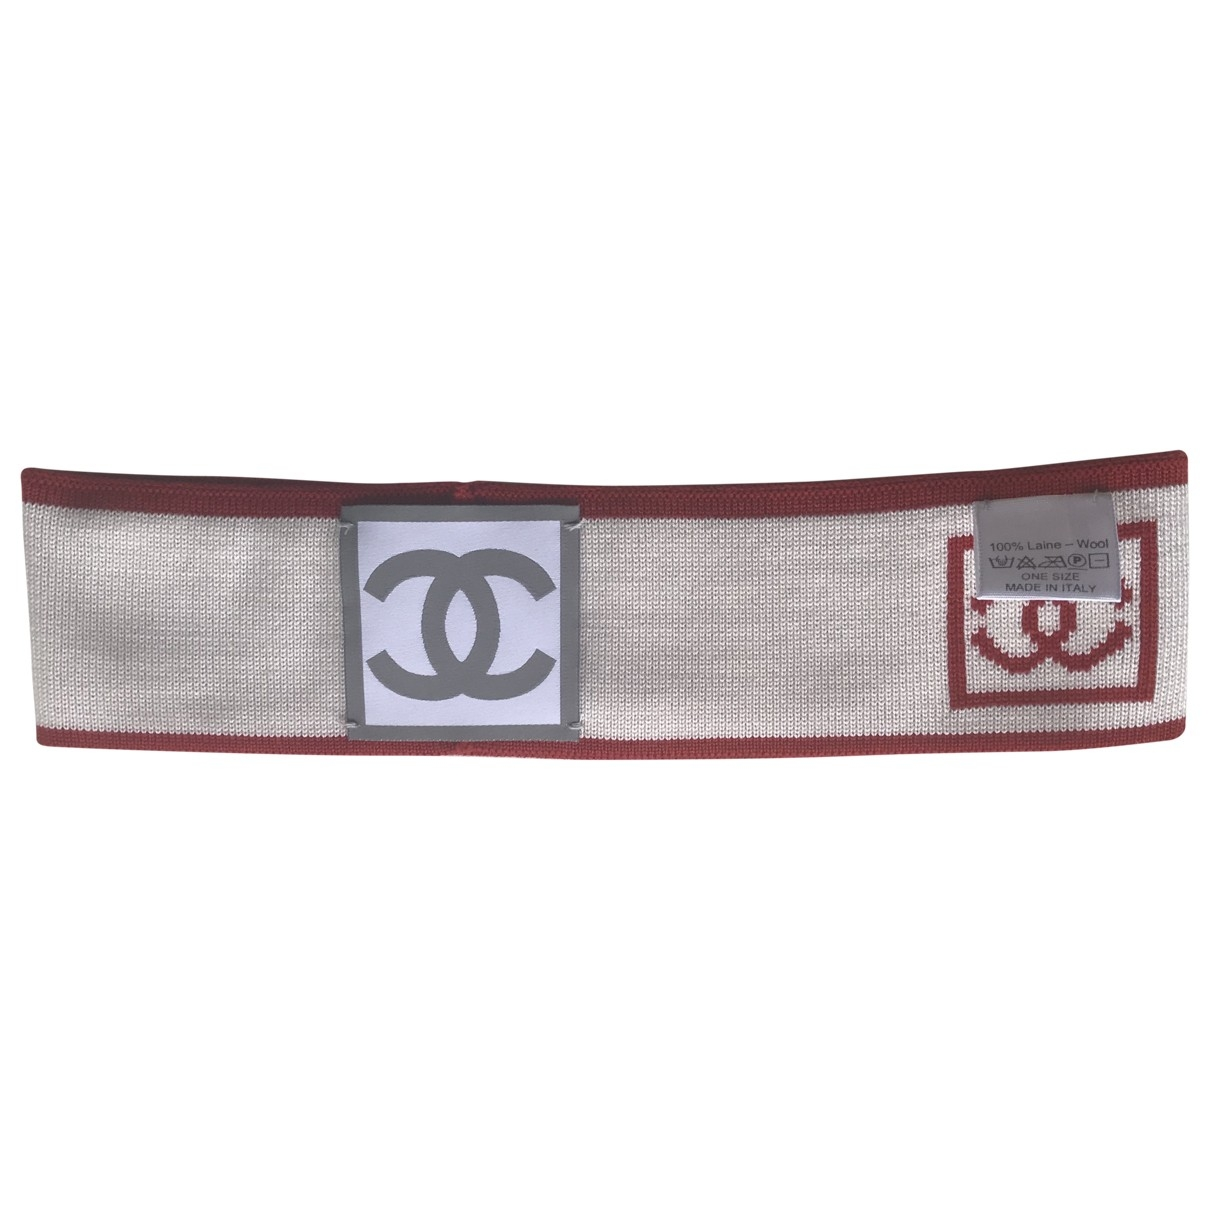 Chanel \N Red Hair accessories for Women M International